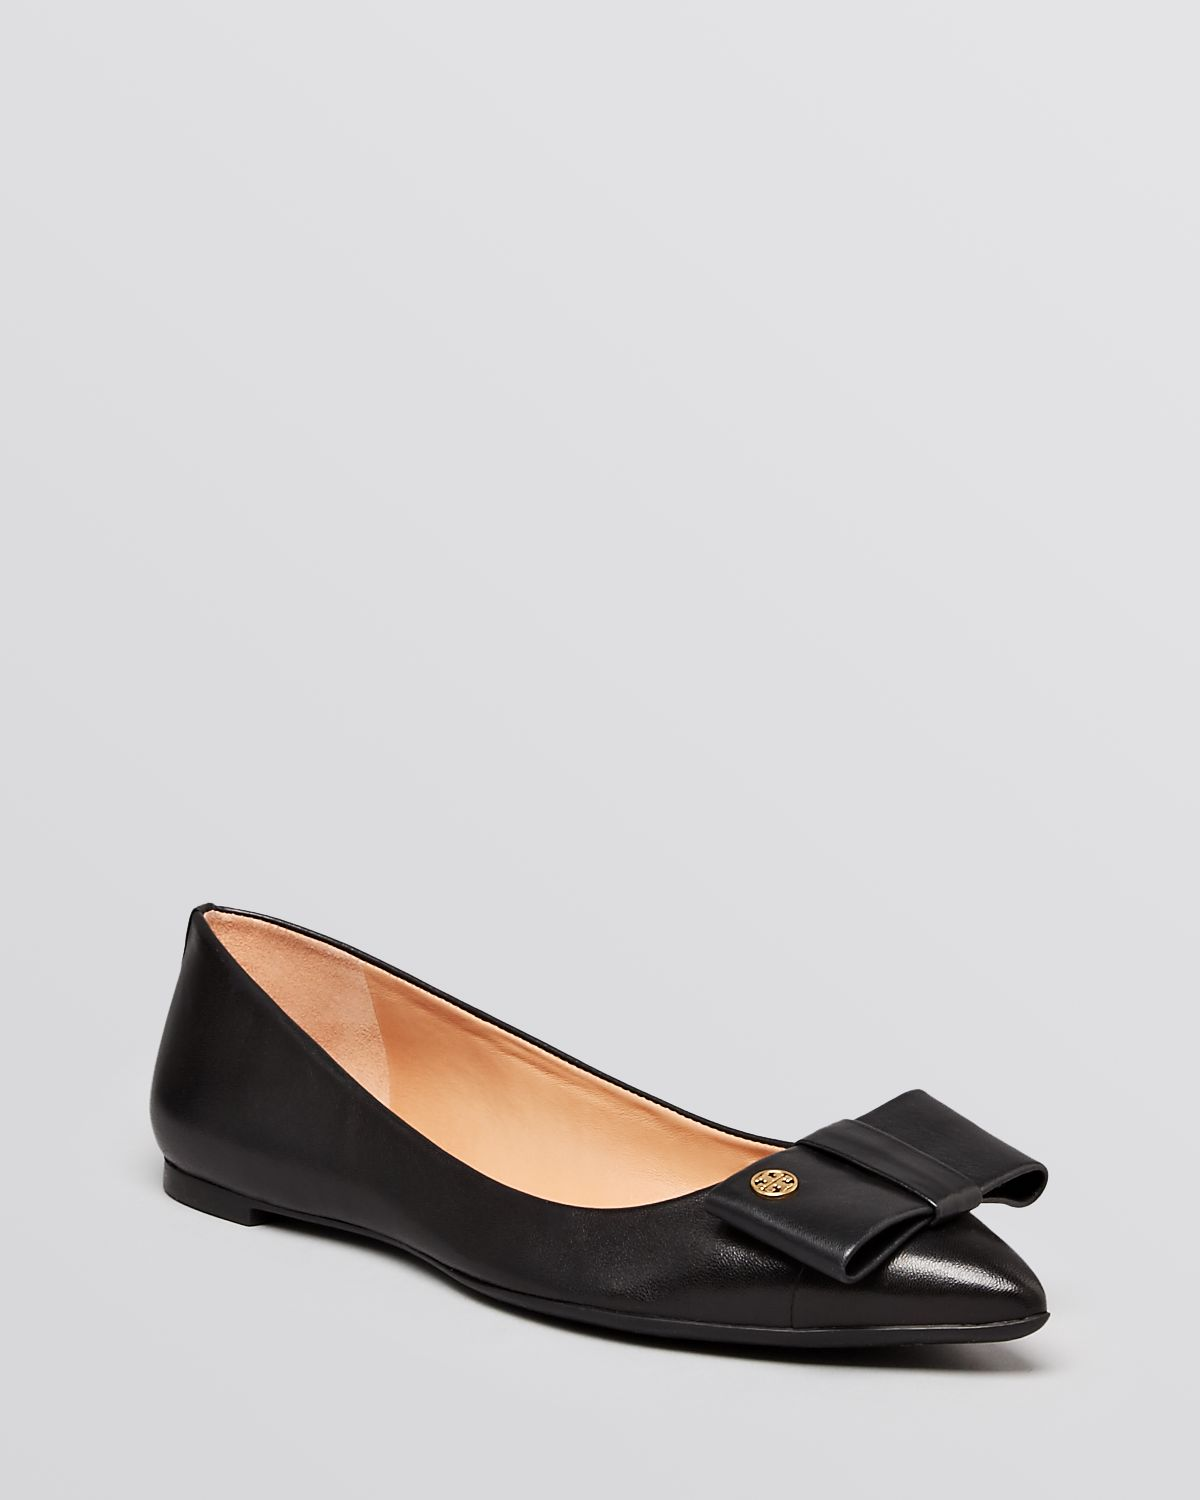 lyst tory burch pointed toe flats aimee in black